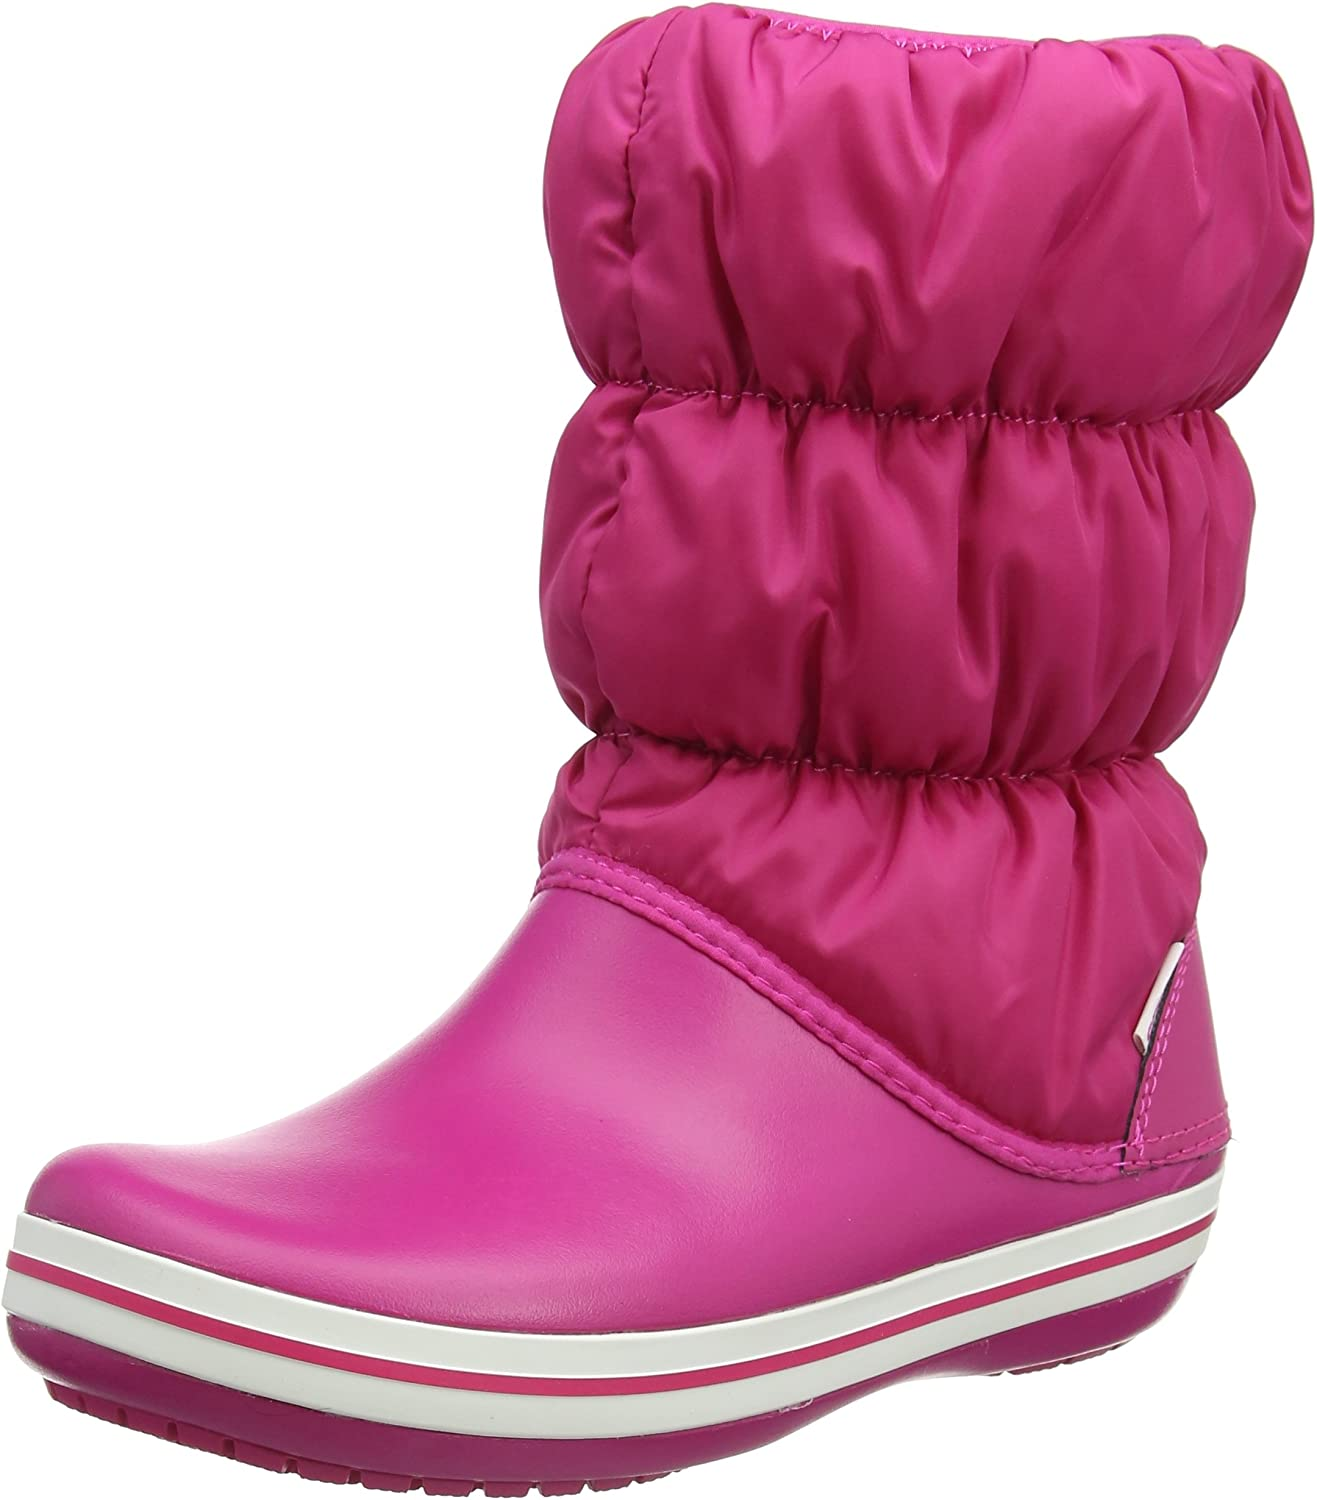 Crocs Women's Winter Puff Nylon Pull On Boot Candy Pink